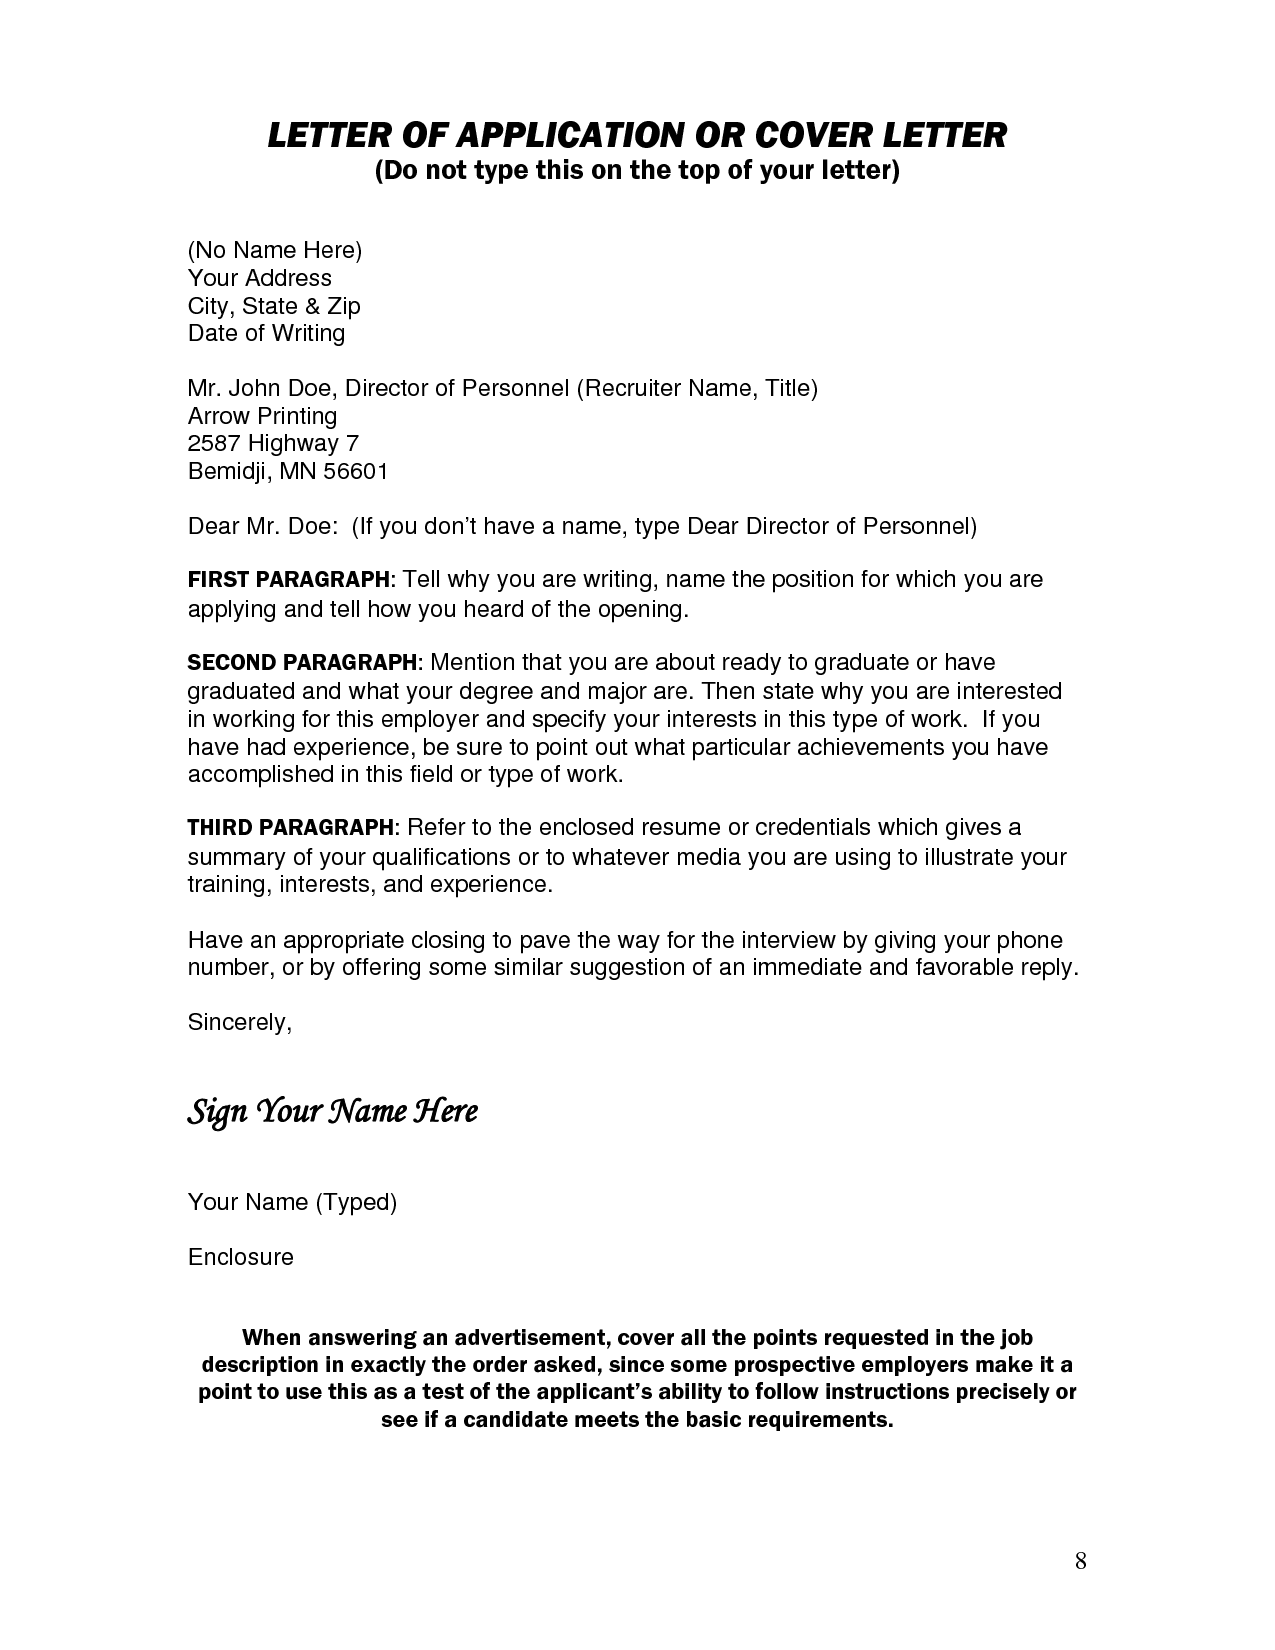 Cover Letter Template No Name Cover